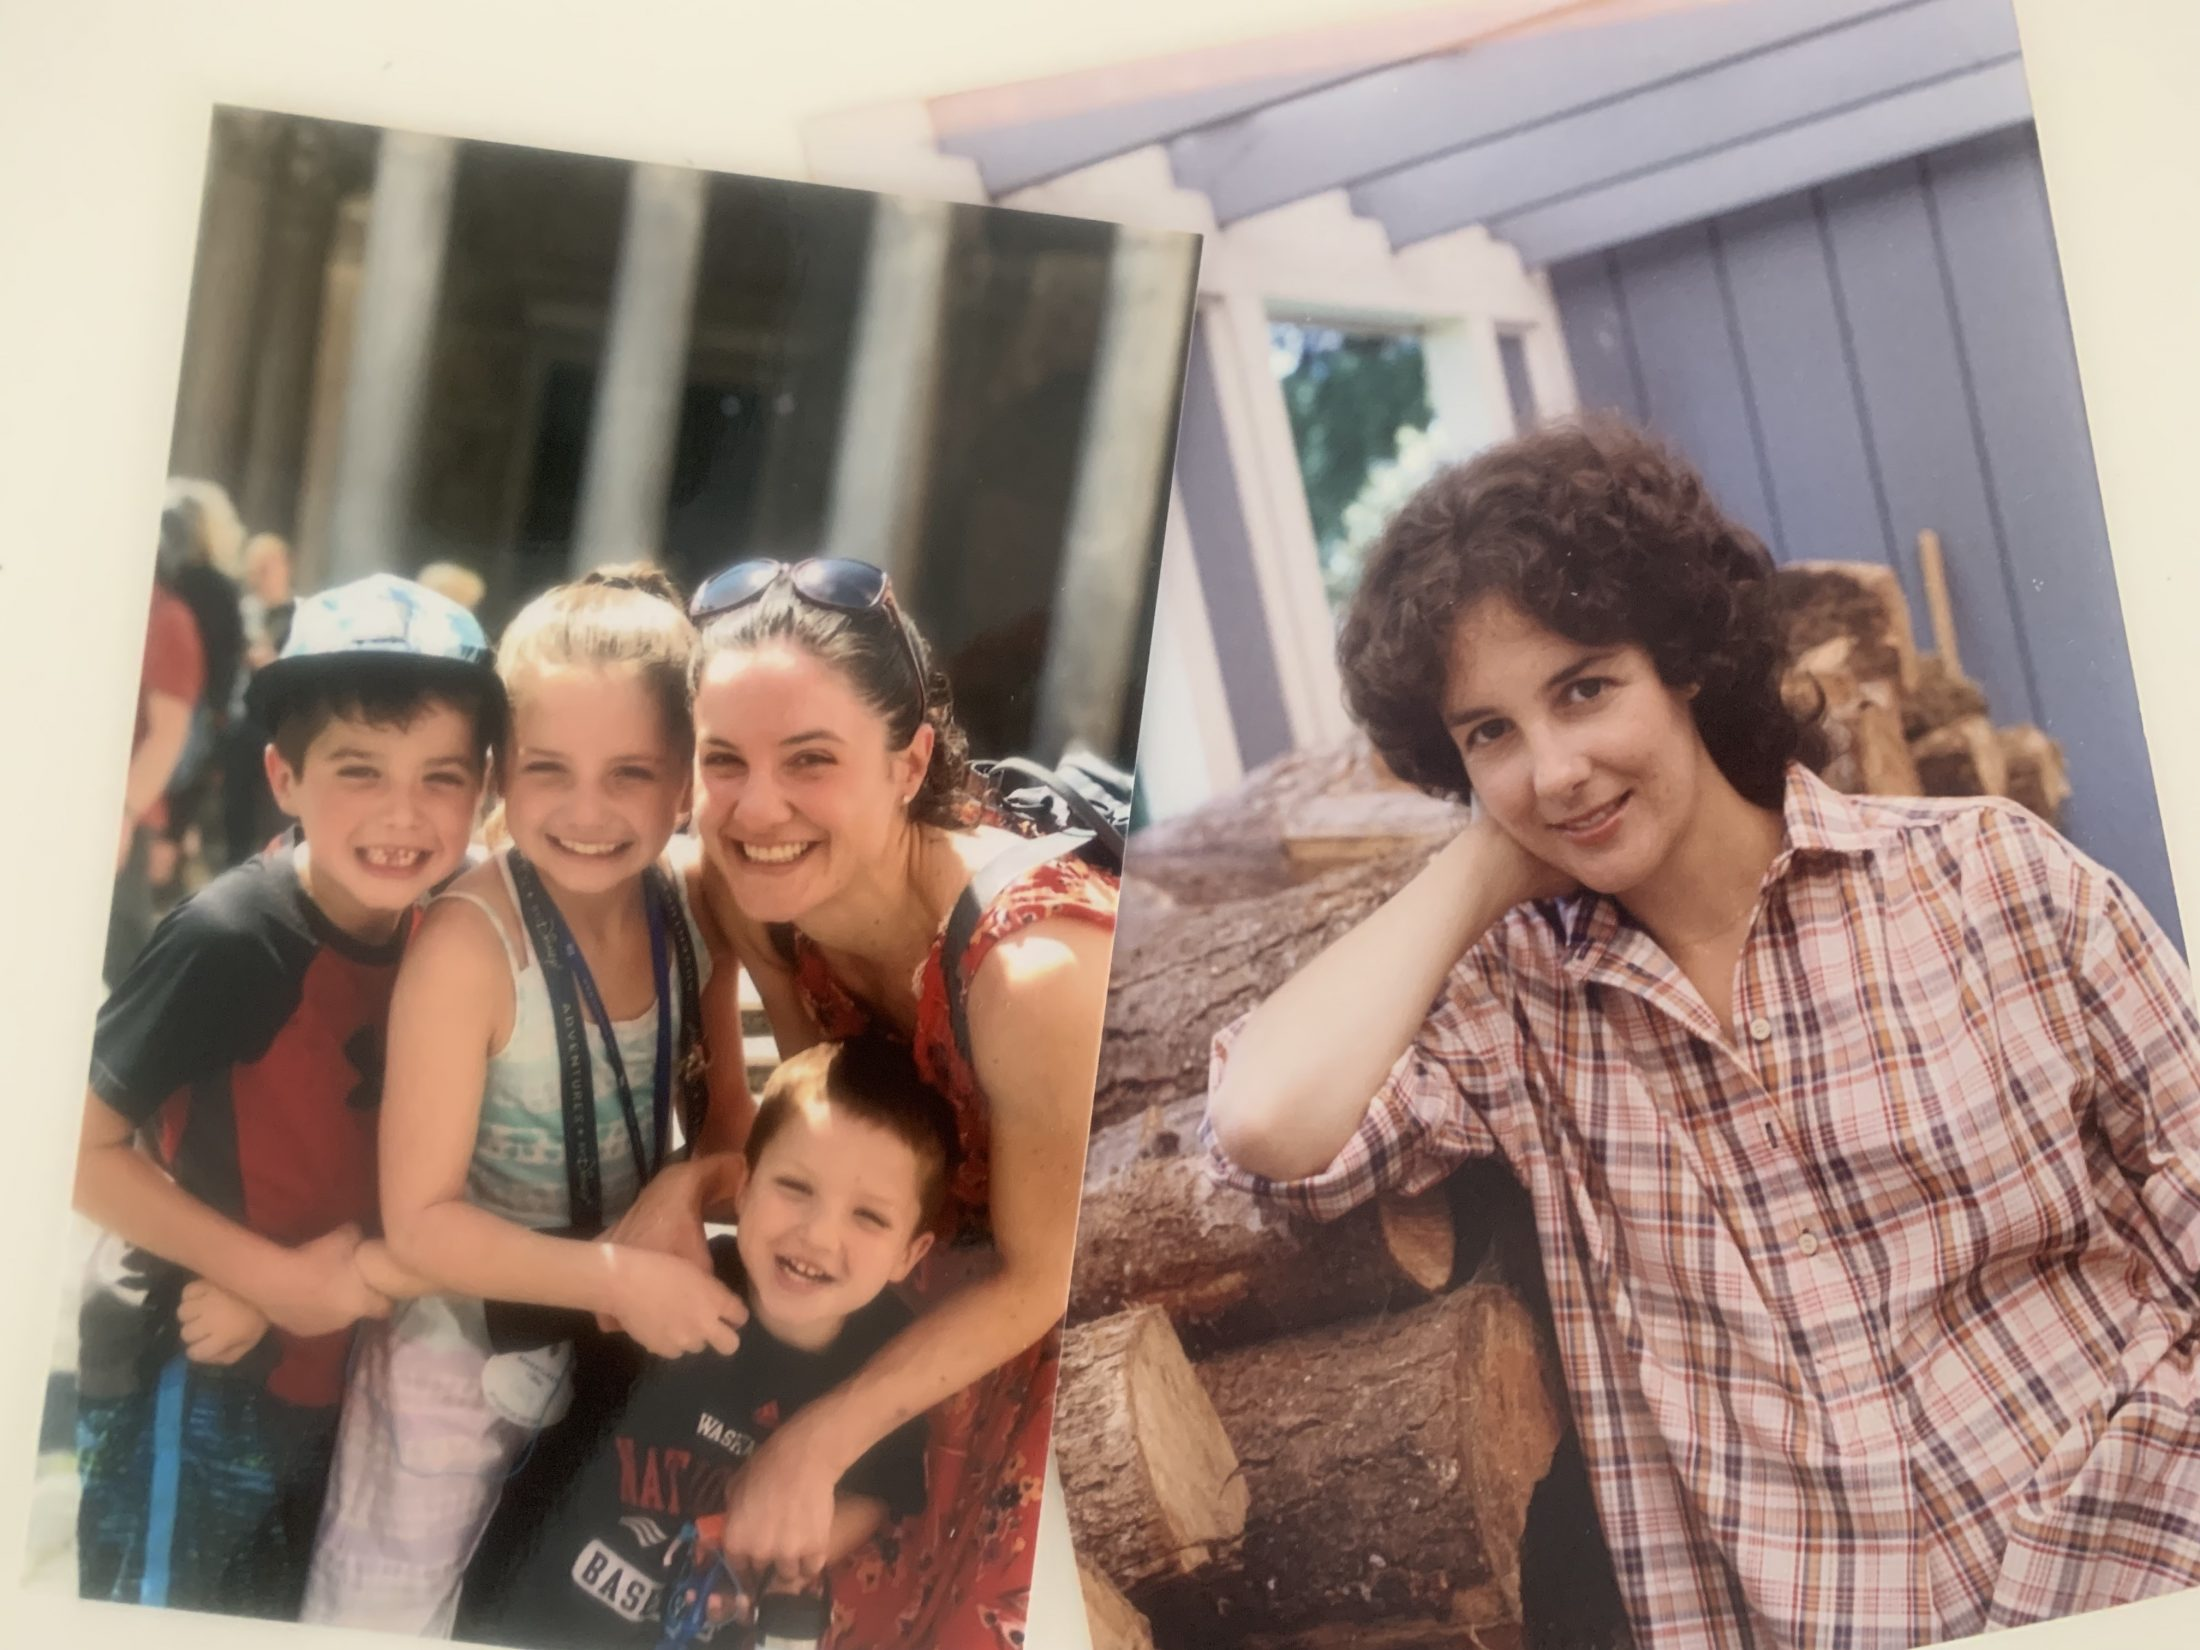 2 photos of the family of DC widow blog writer Marjorie Brimley